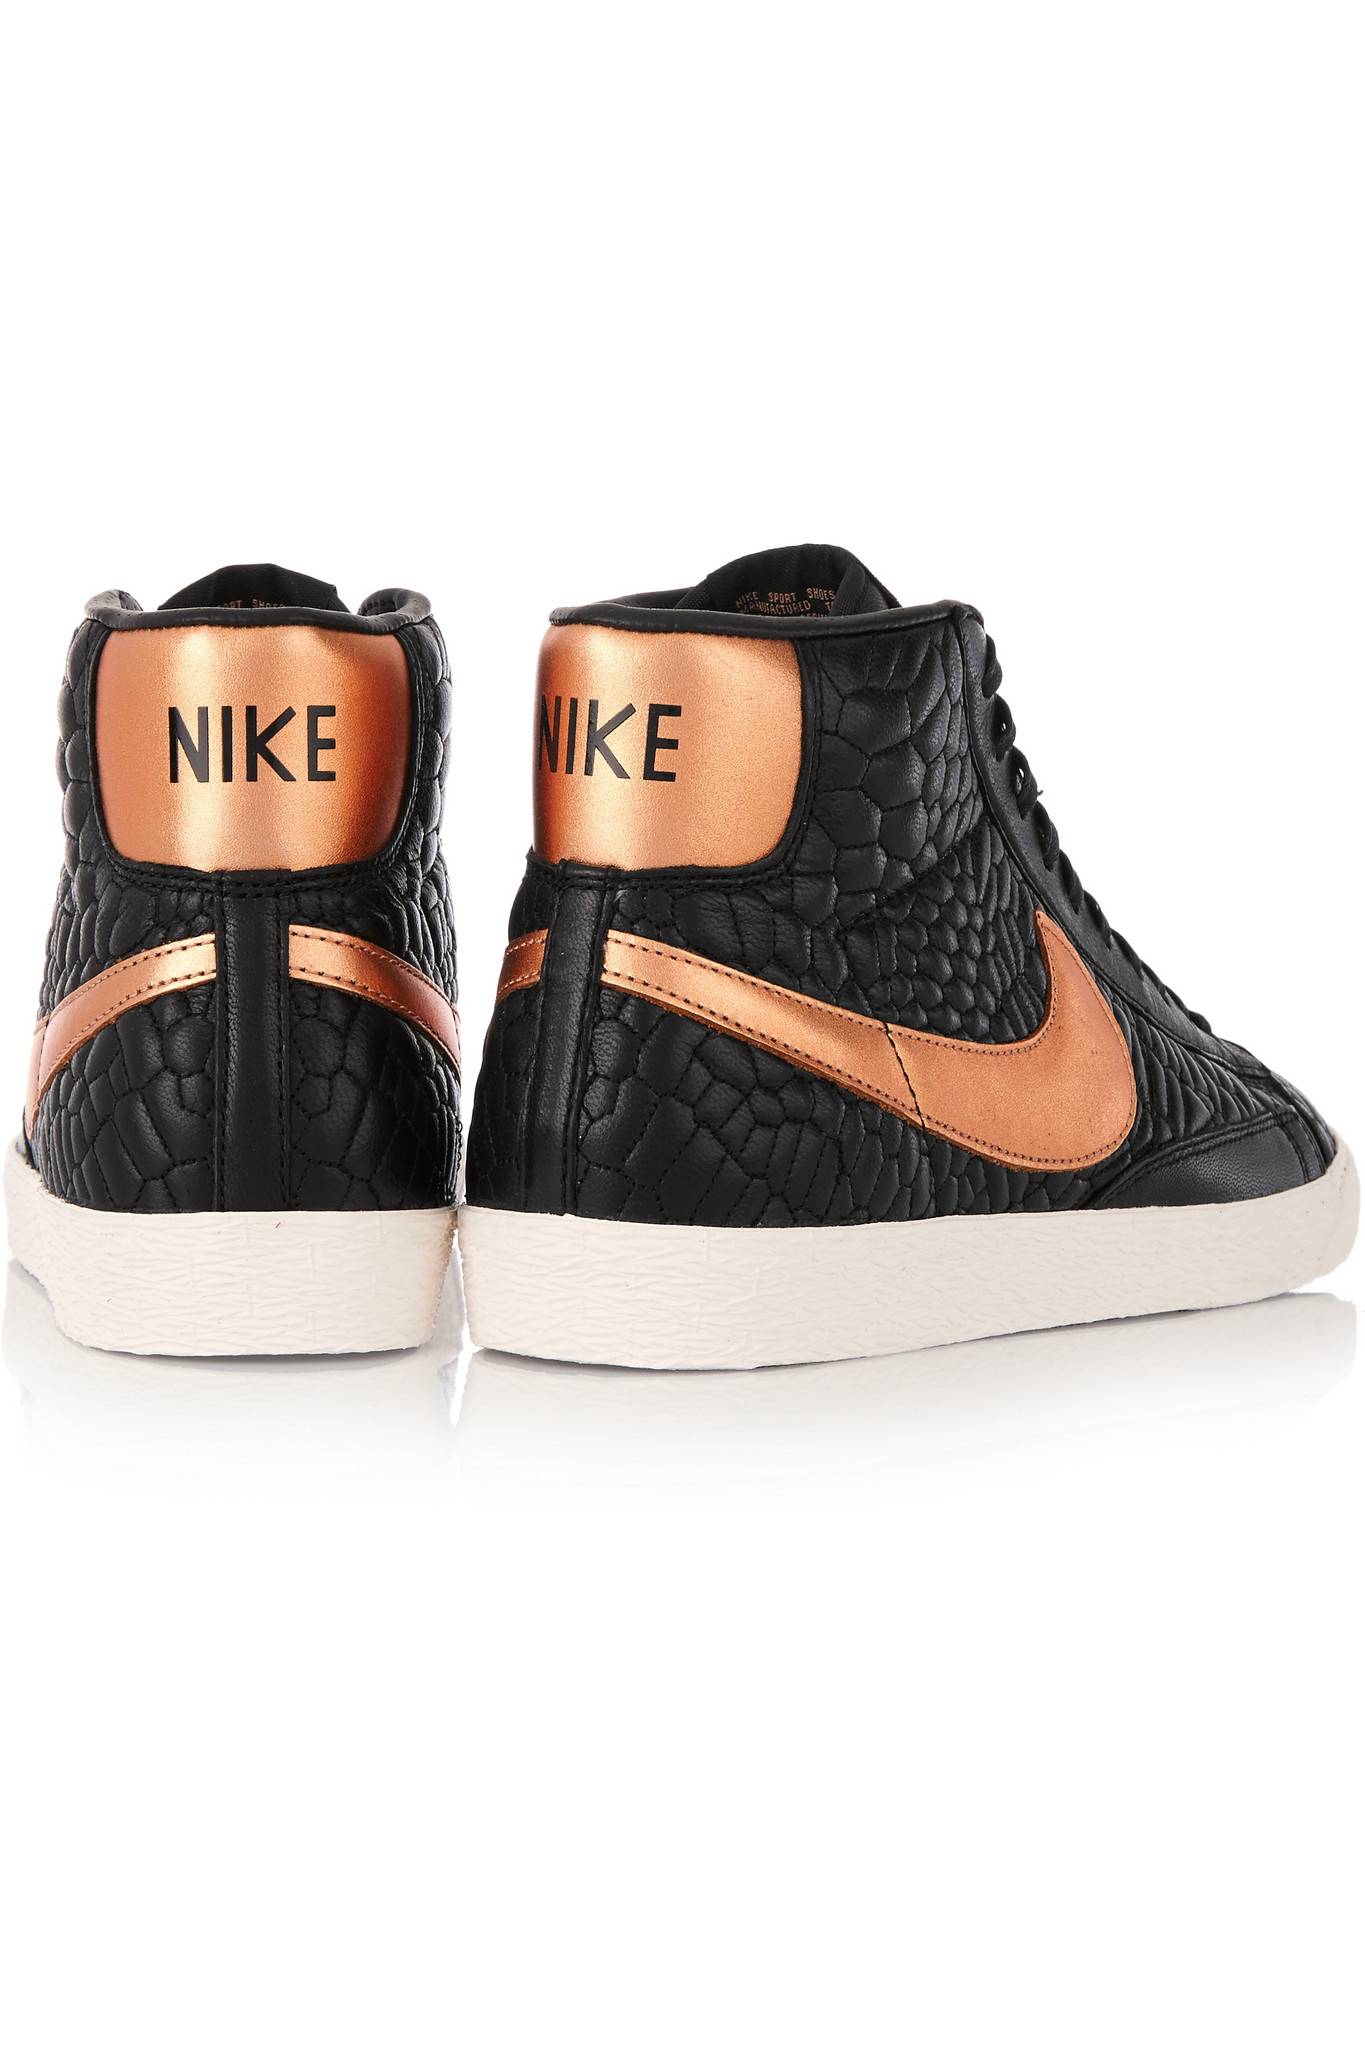 nike air force - Nike - Blazer Croc-effect Leather High-top Sneakers - Black in ...